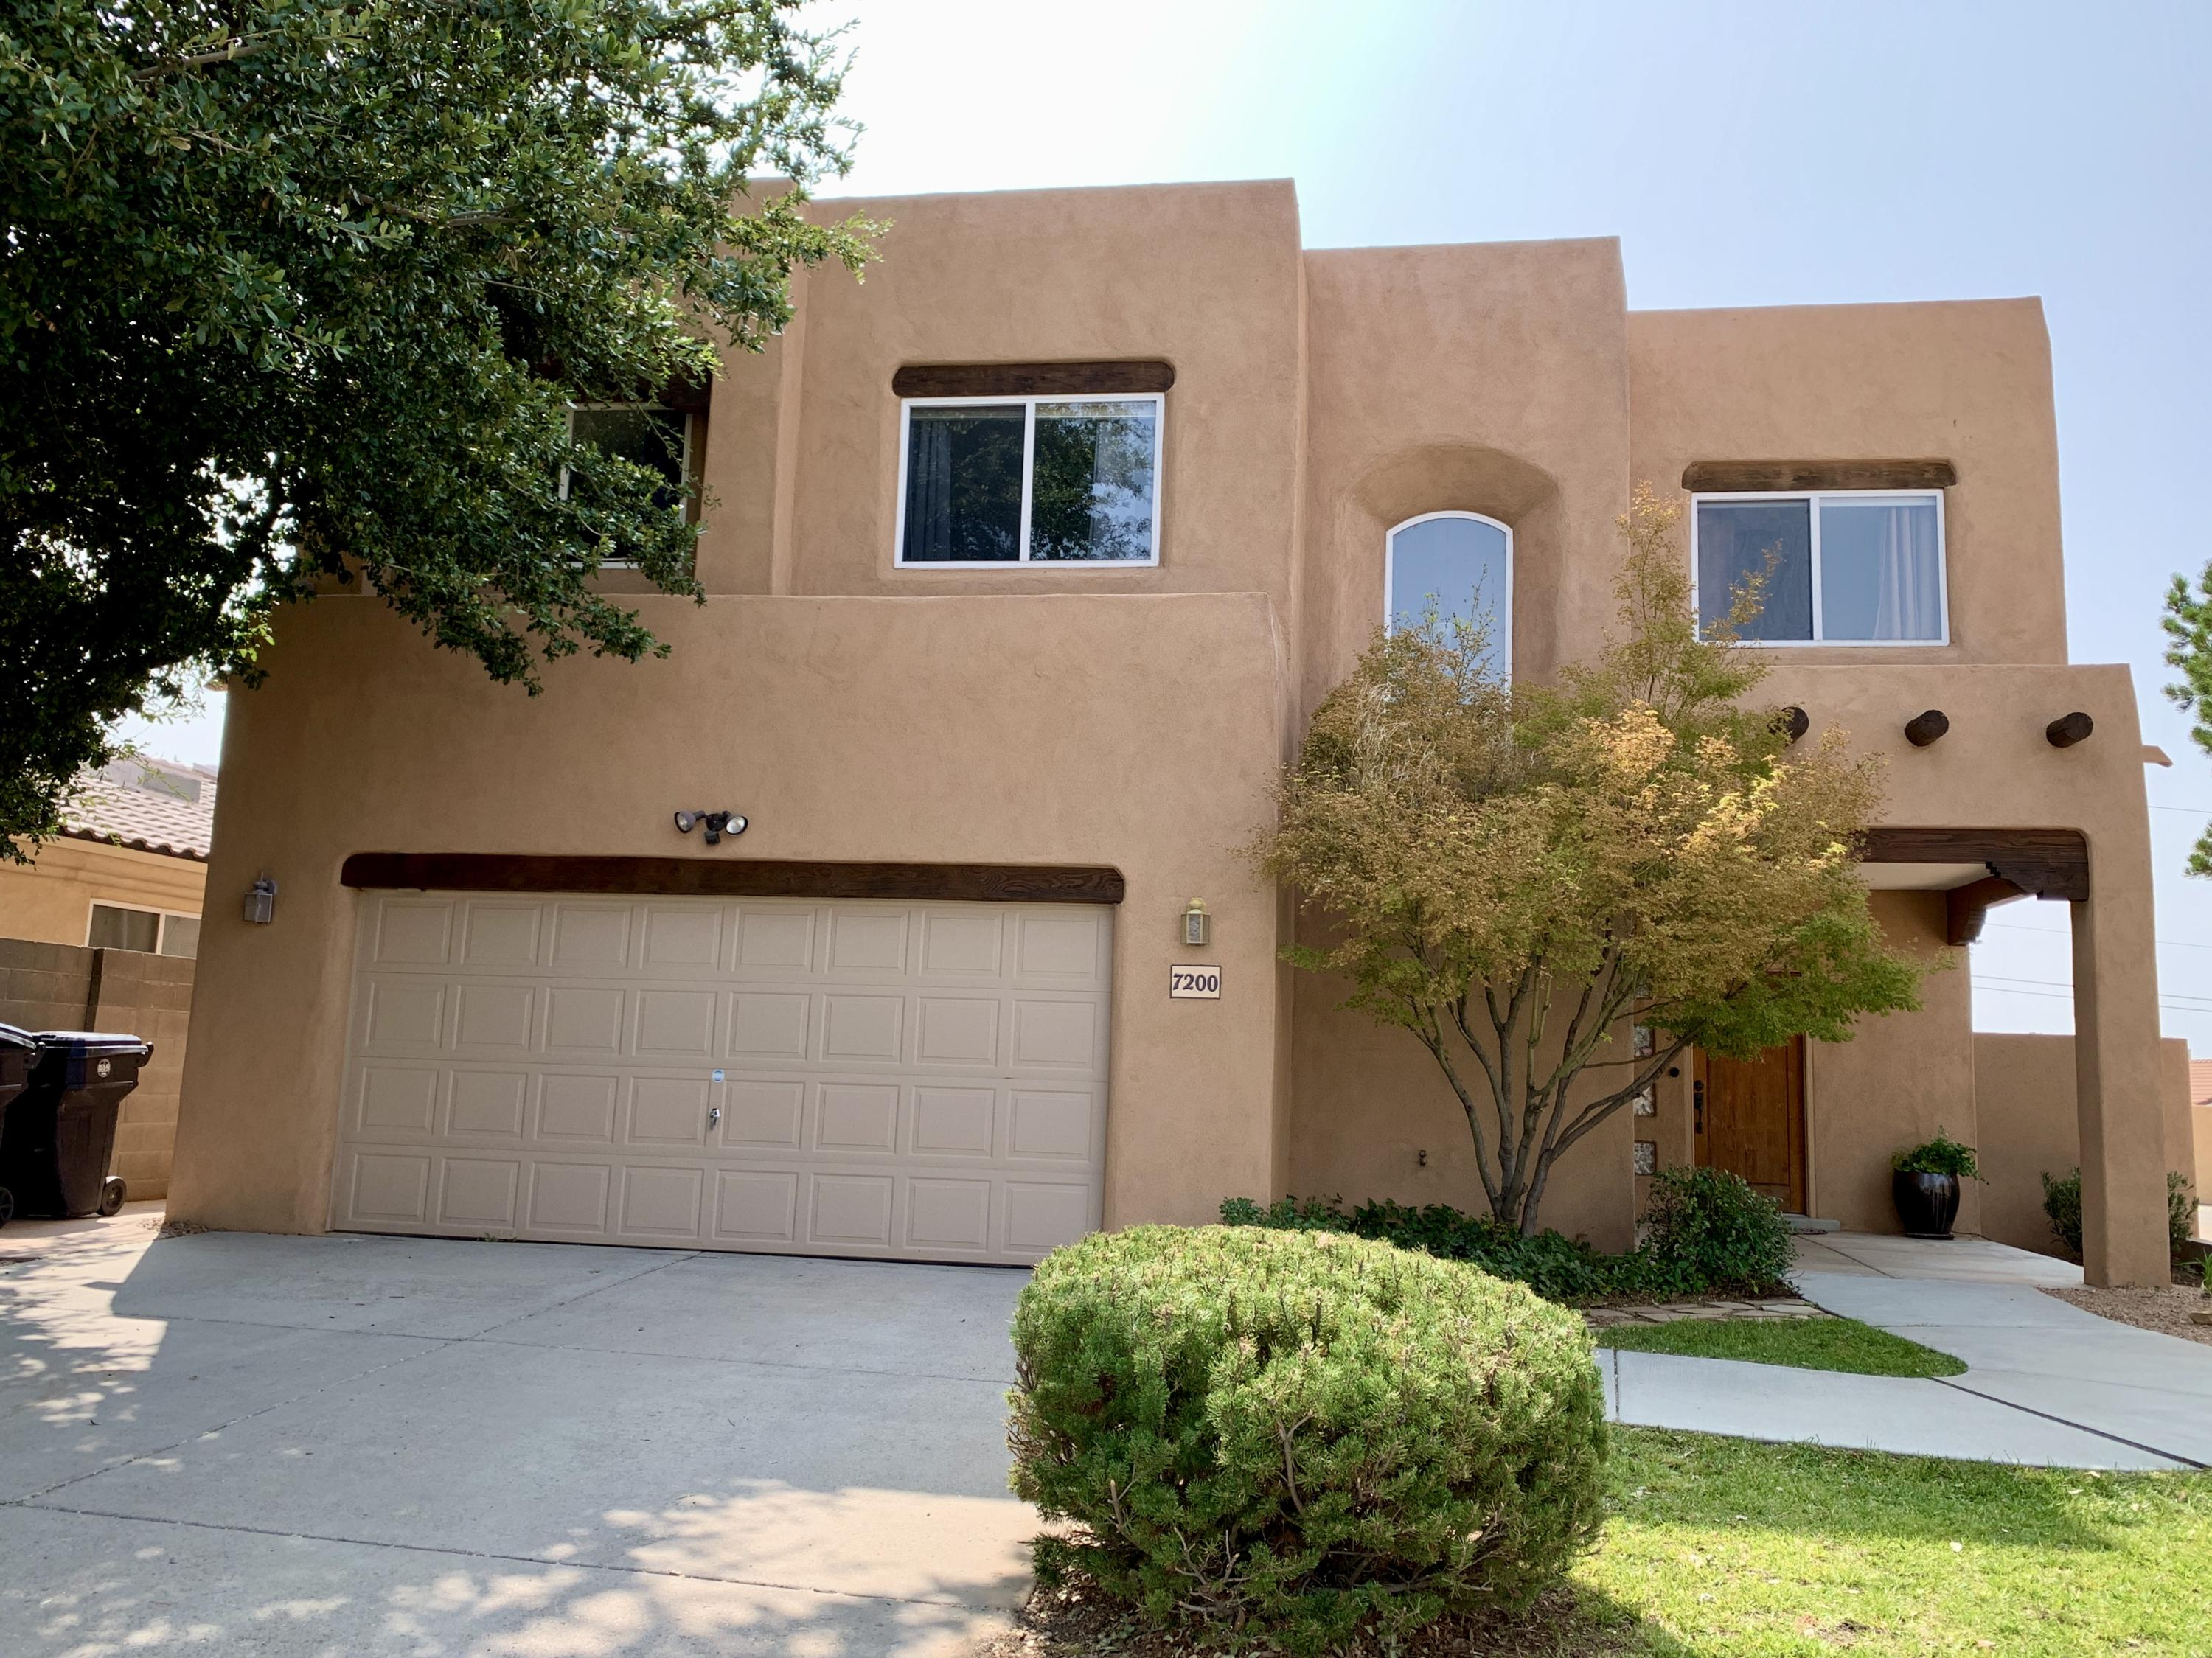 7200 PEBBLE STONE Place NE Property Photo - Albuquerque, NM real estate listing